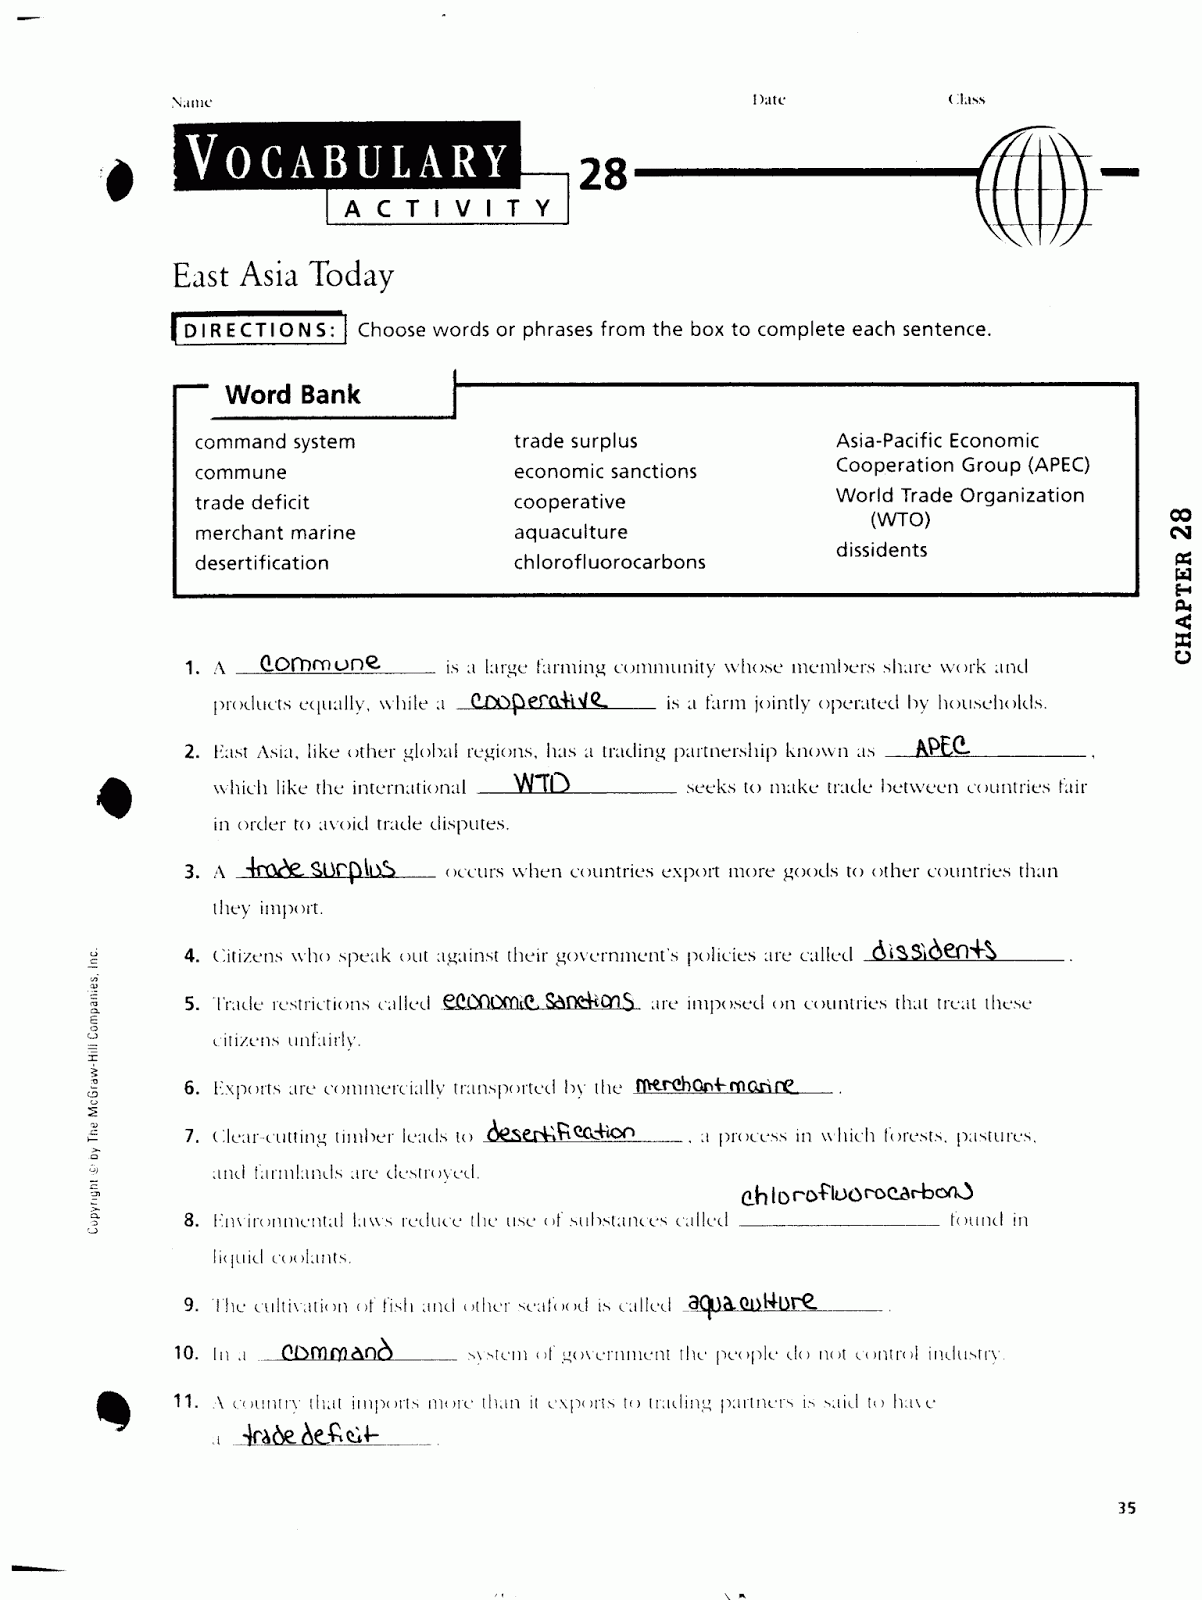 Deposition Worksheet Key